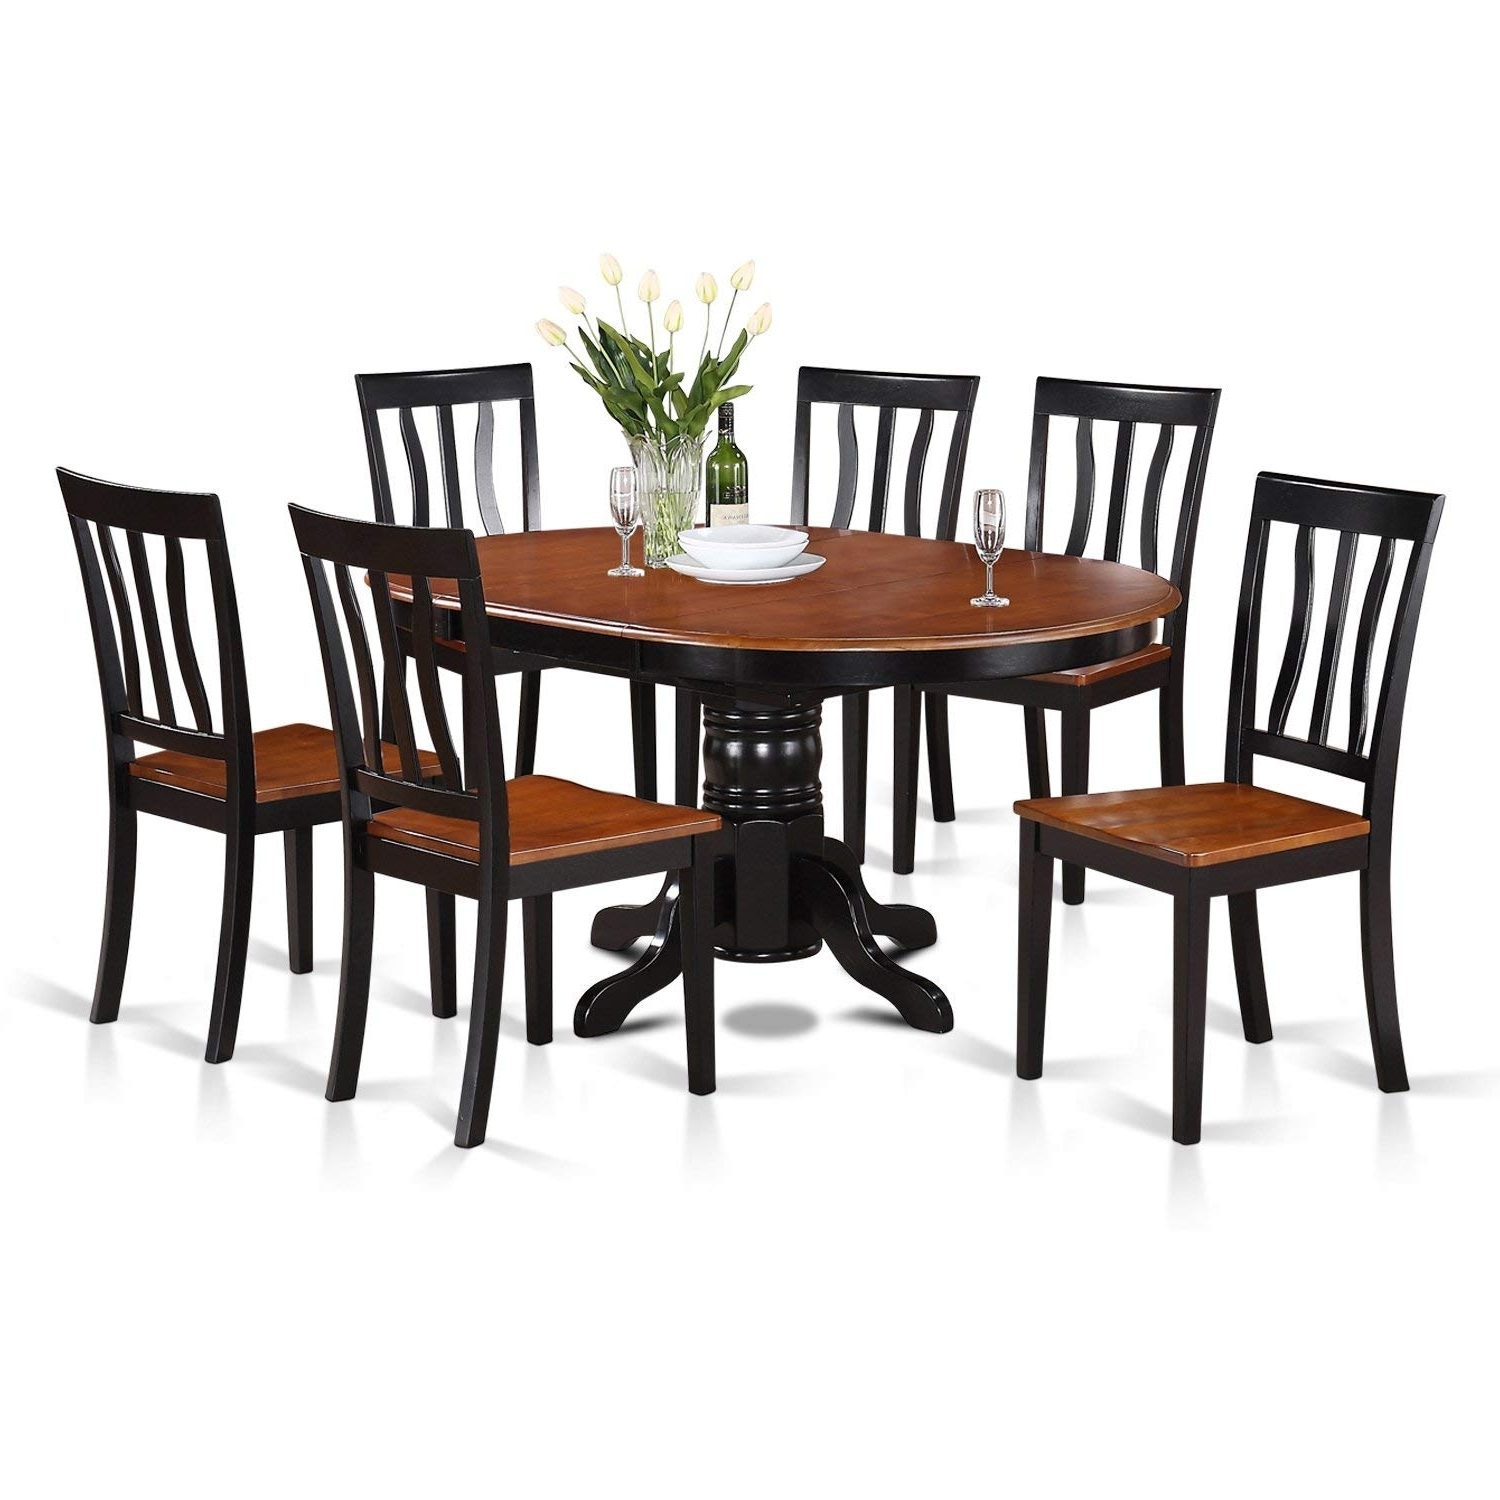 Best And Newest Amazon: East West Furniture Avat7 Blk W 7 Piece Dining Table Set Inside Cheap Dining Tables Sets (View 6 of 25)